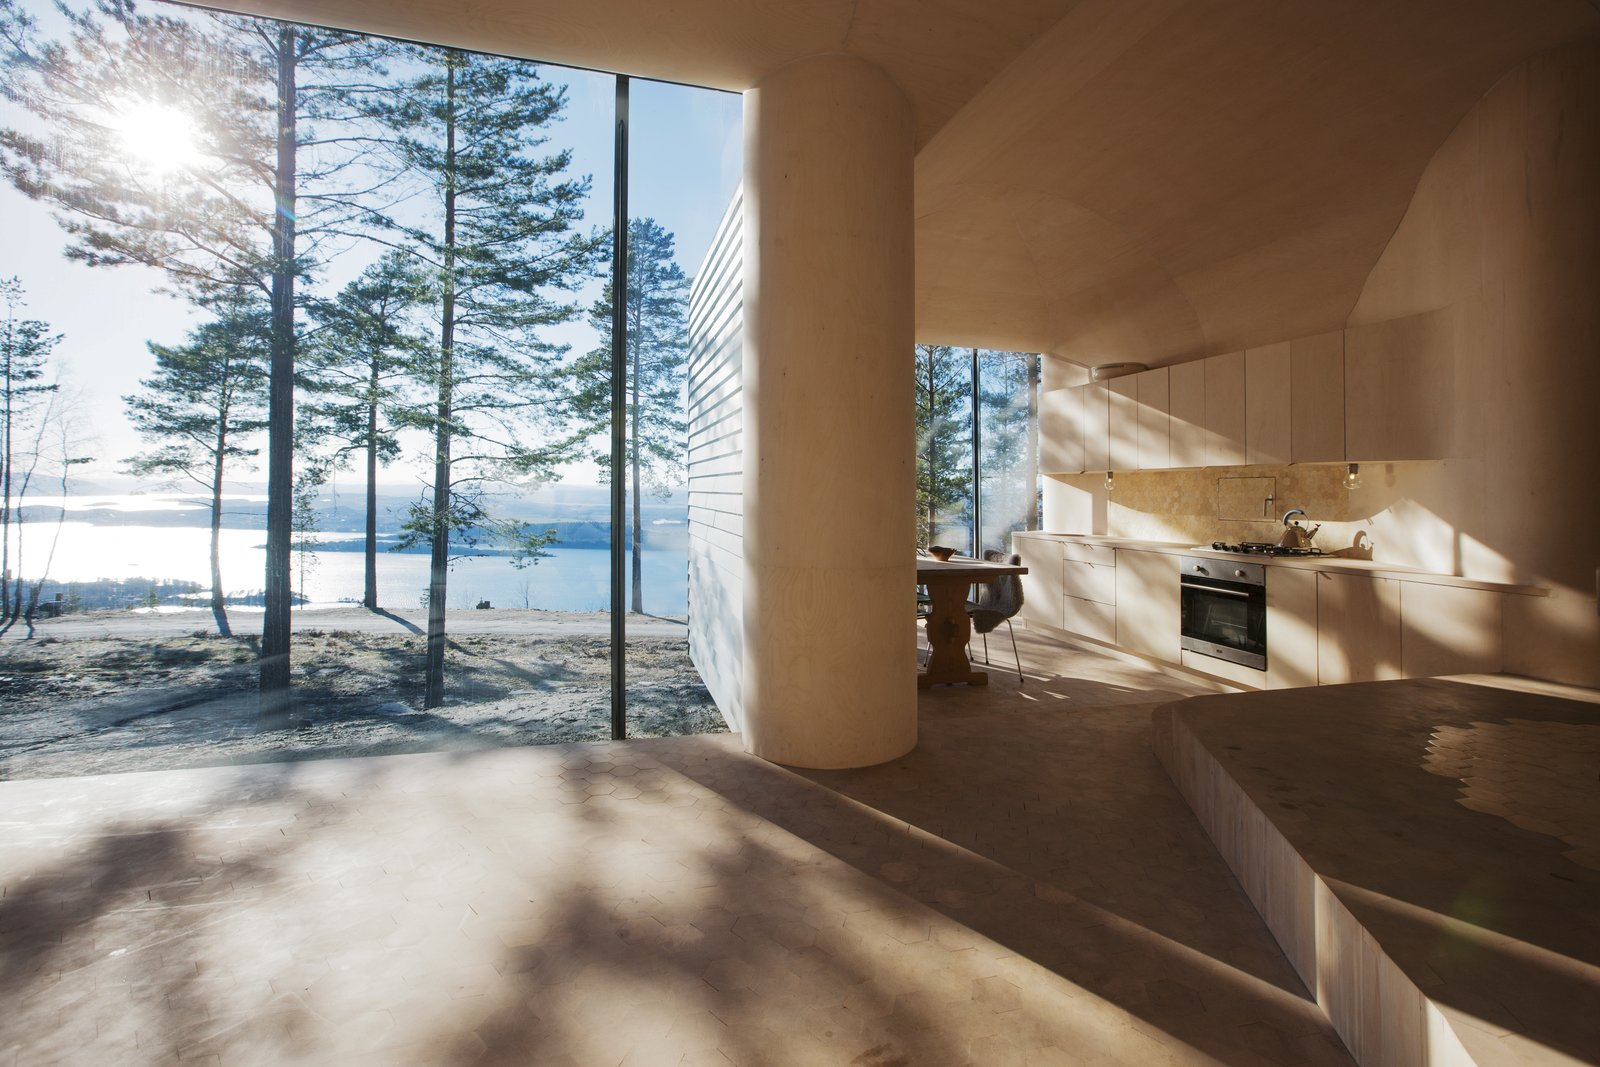 "The architects designed the large glass expanses in the dining and living areas so that their frames are hidden from view. ""I love the way the light comes into the cabin and meets the curved surfaces of the walls and ceilings,"" Bae Brandtzæg says. The kitchen's custom cabinets were designed by Atelier Oslo and constructed by the contractor, Byggmester Bård Bredesen. The gas-powered stove, oven, and fridge are by VERA.  Cabin Norderhov by Laura C. Mallonee"